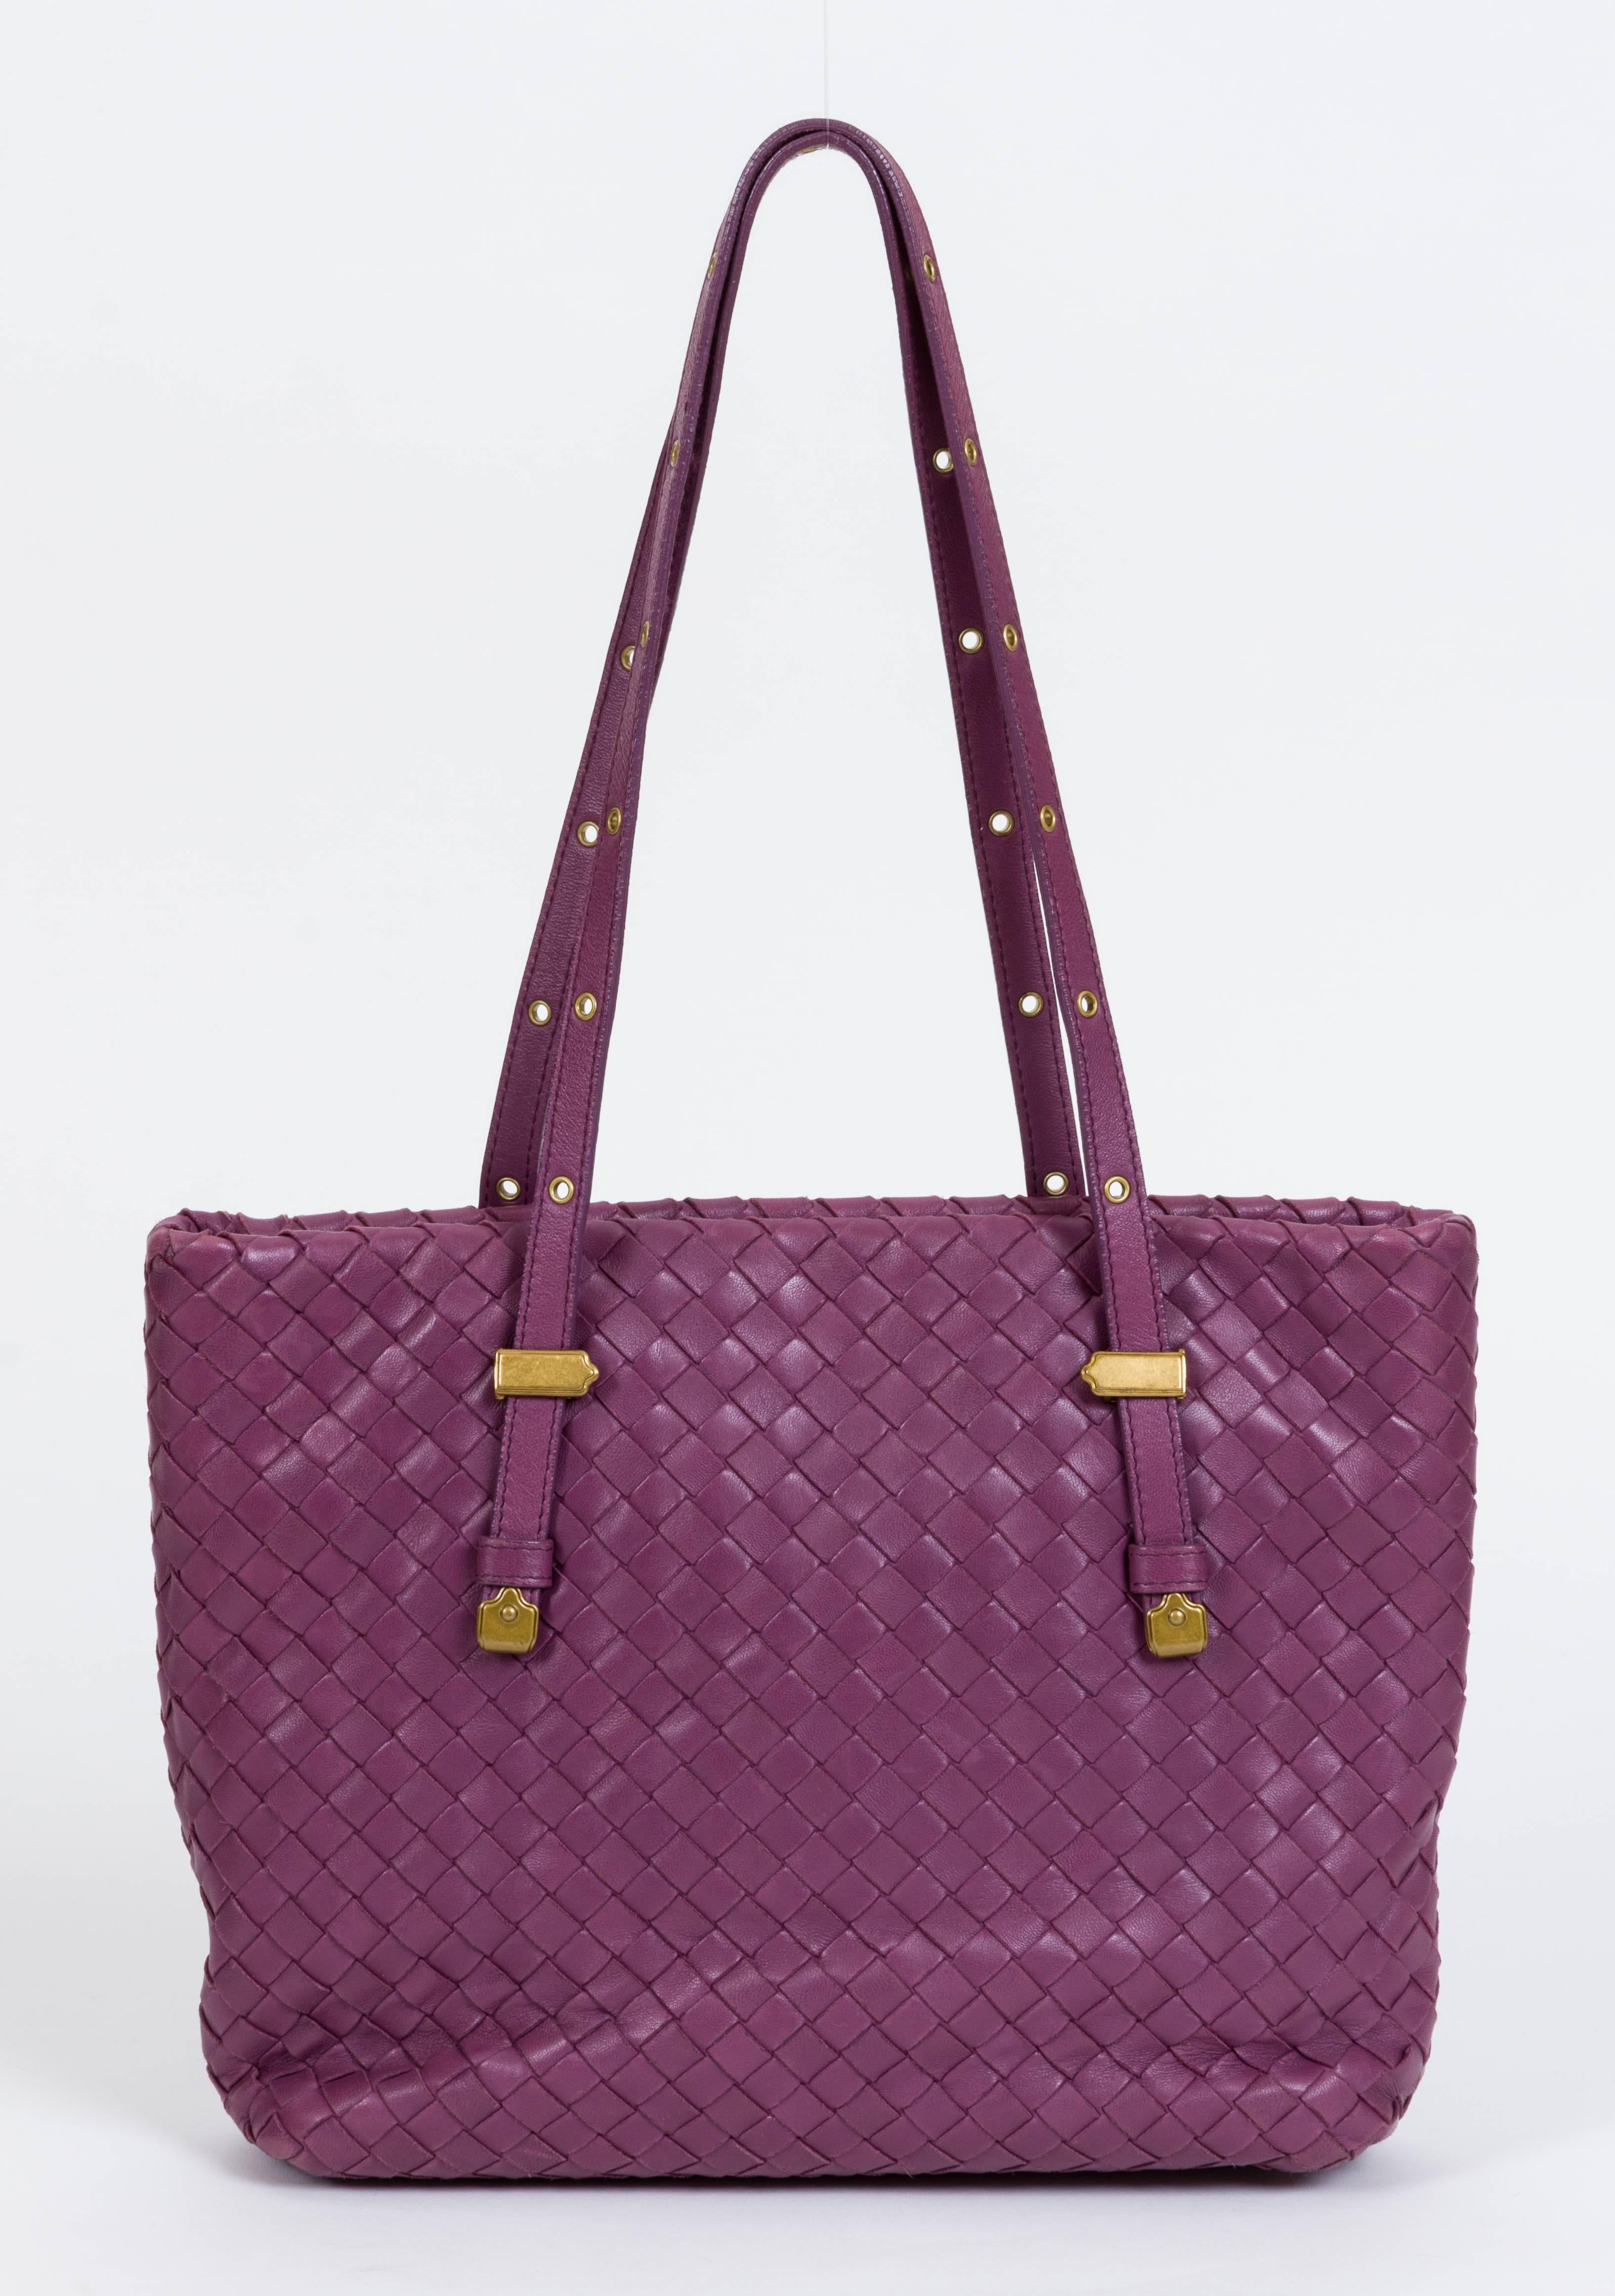 dbae65ac0dea Bottega Veneta Purple Woven Medium Tote Bag For Sale at 1stdibs